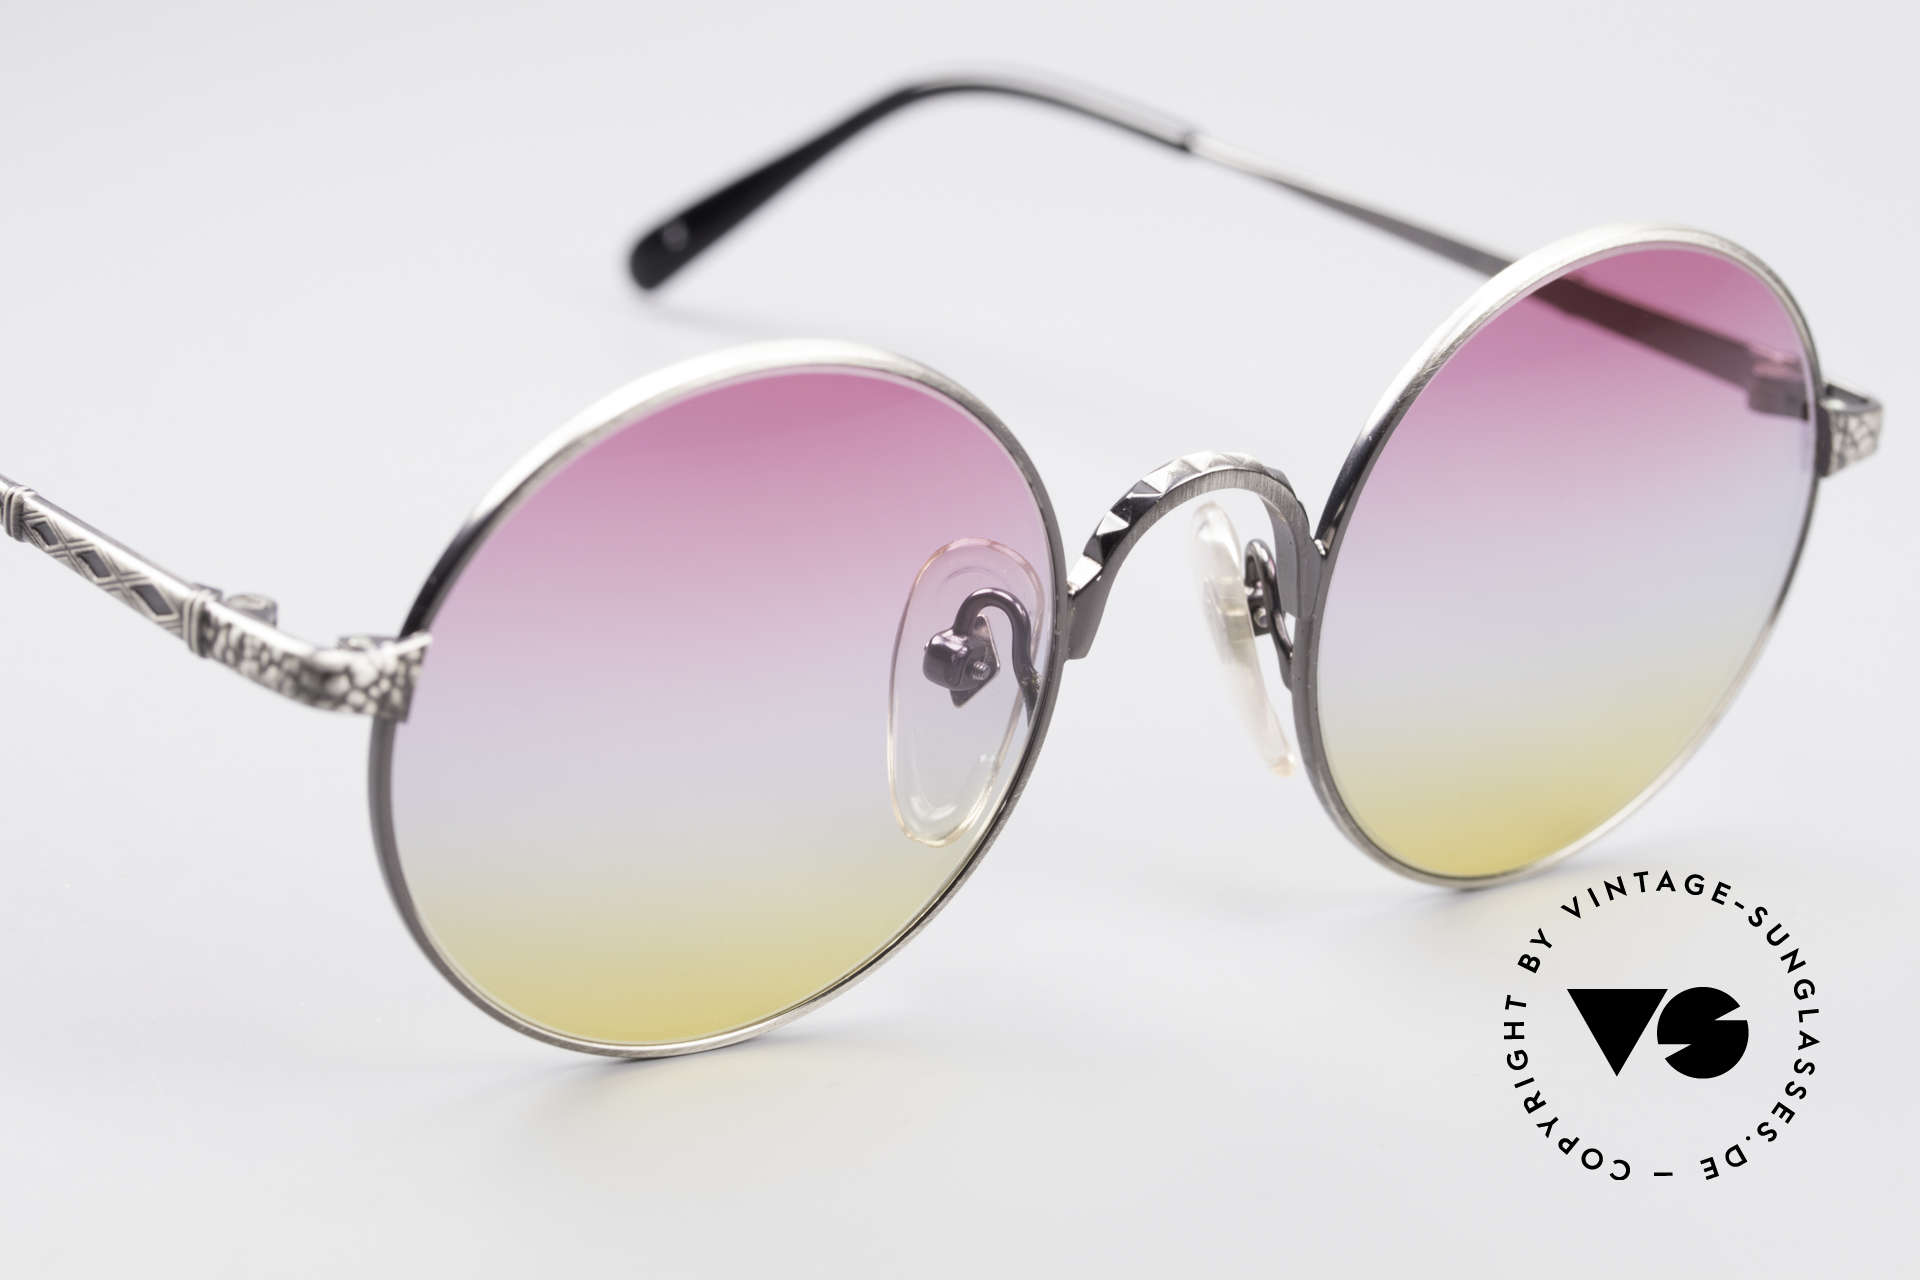 Jean Paul Gaultier 55-9671 Round Designer Sunglasses, NO RETRO shades, but an old 90s JPG Original, Made for Men and Women